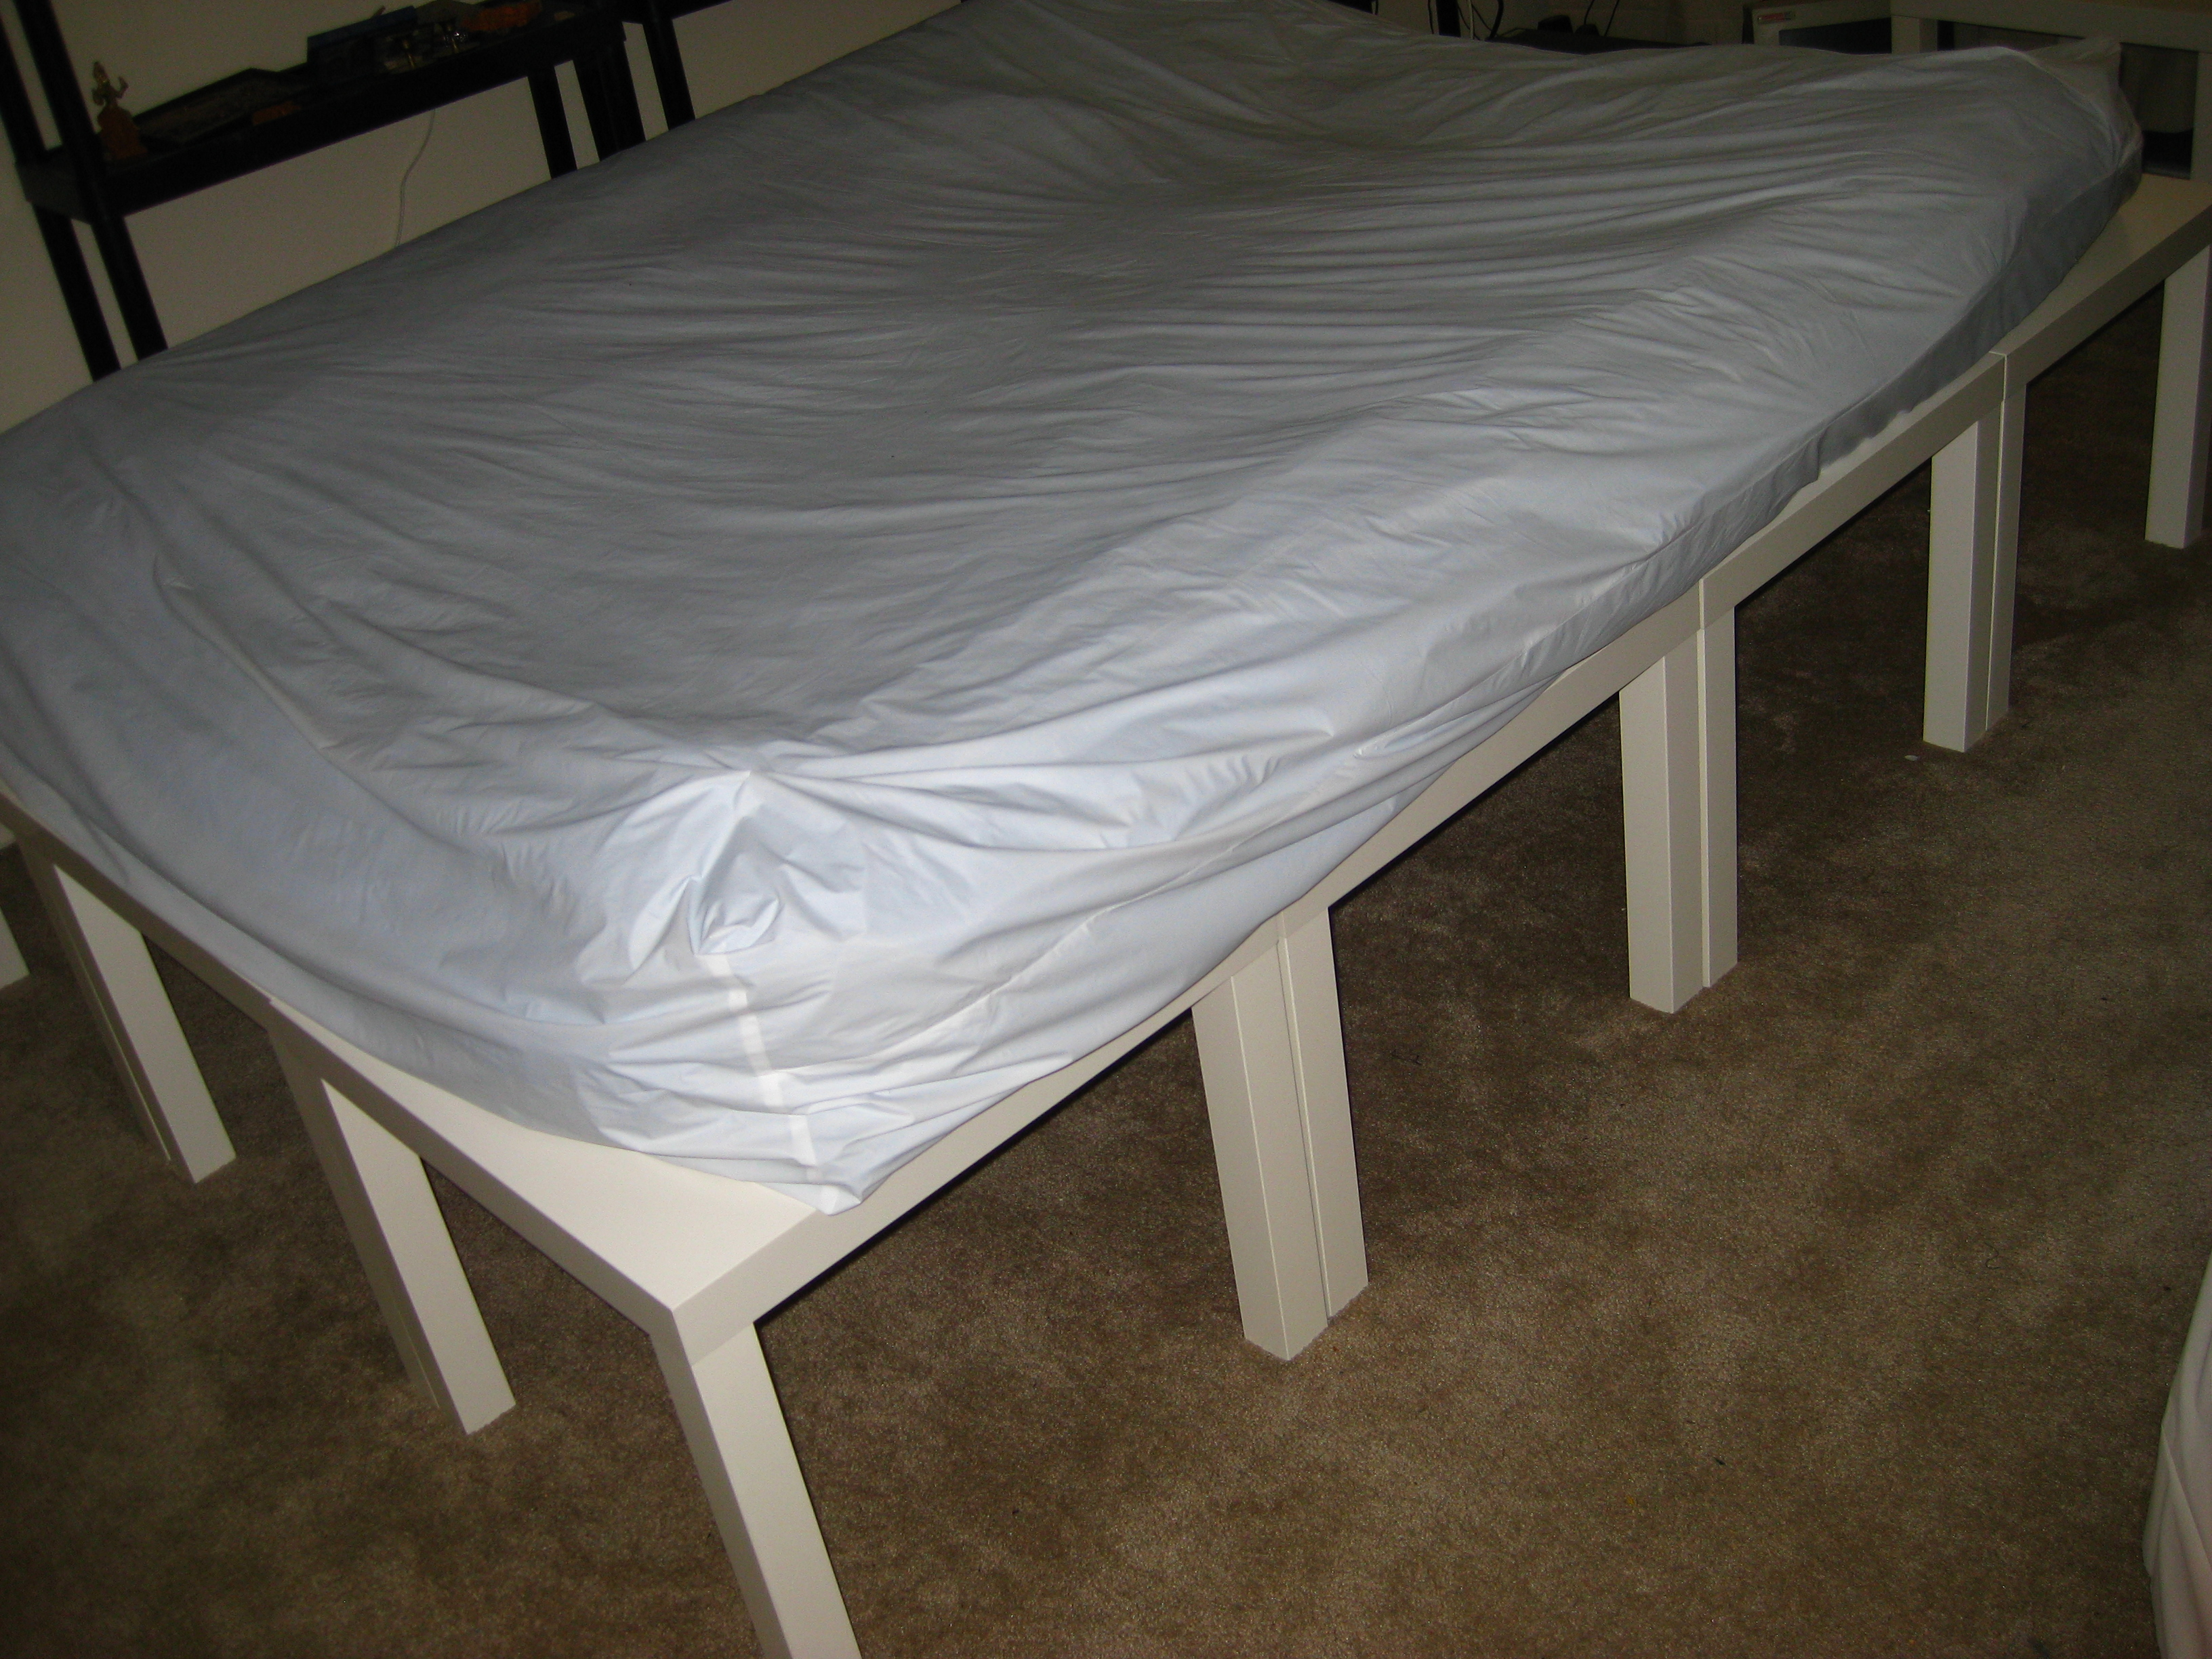 DIY Mattress Substitute - Out-Of-The-Box, Portable, Lightweight, Inexpensive, Machine-Washable